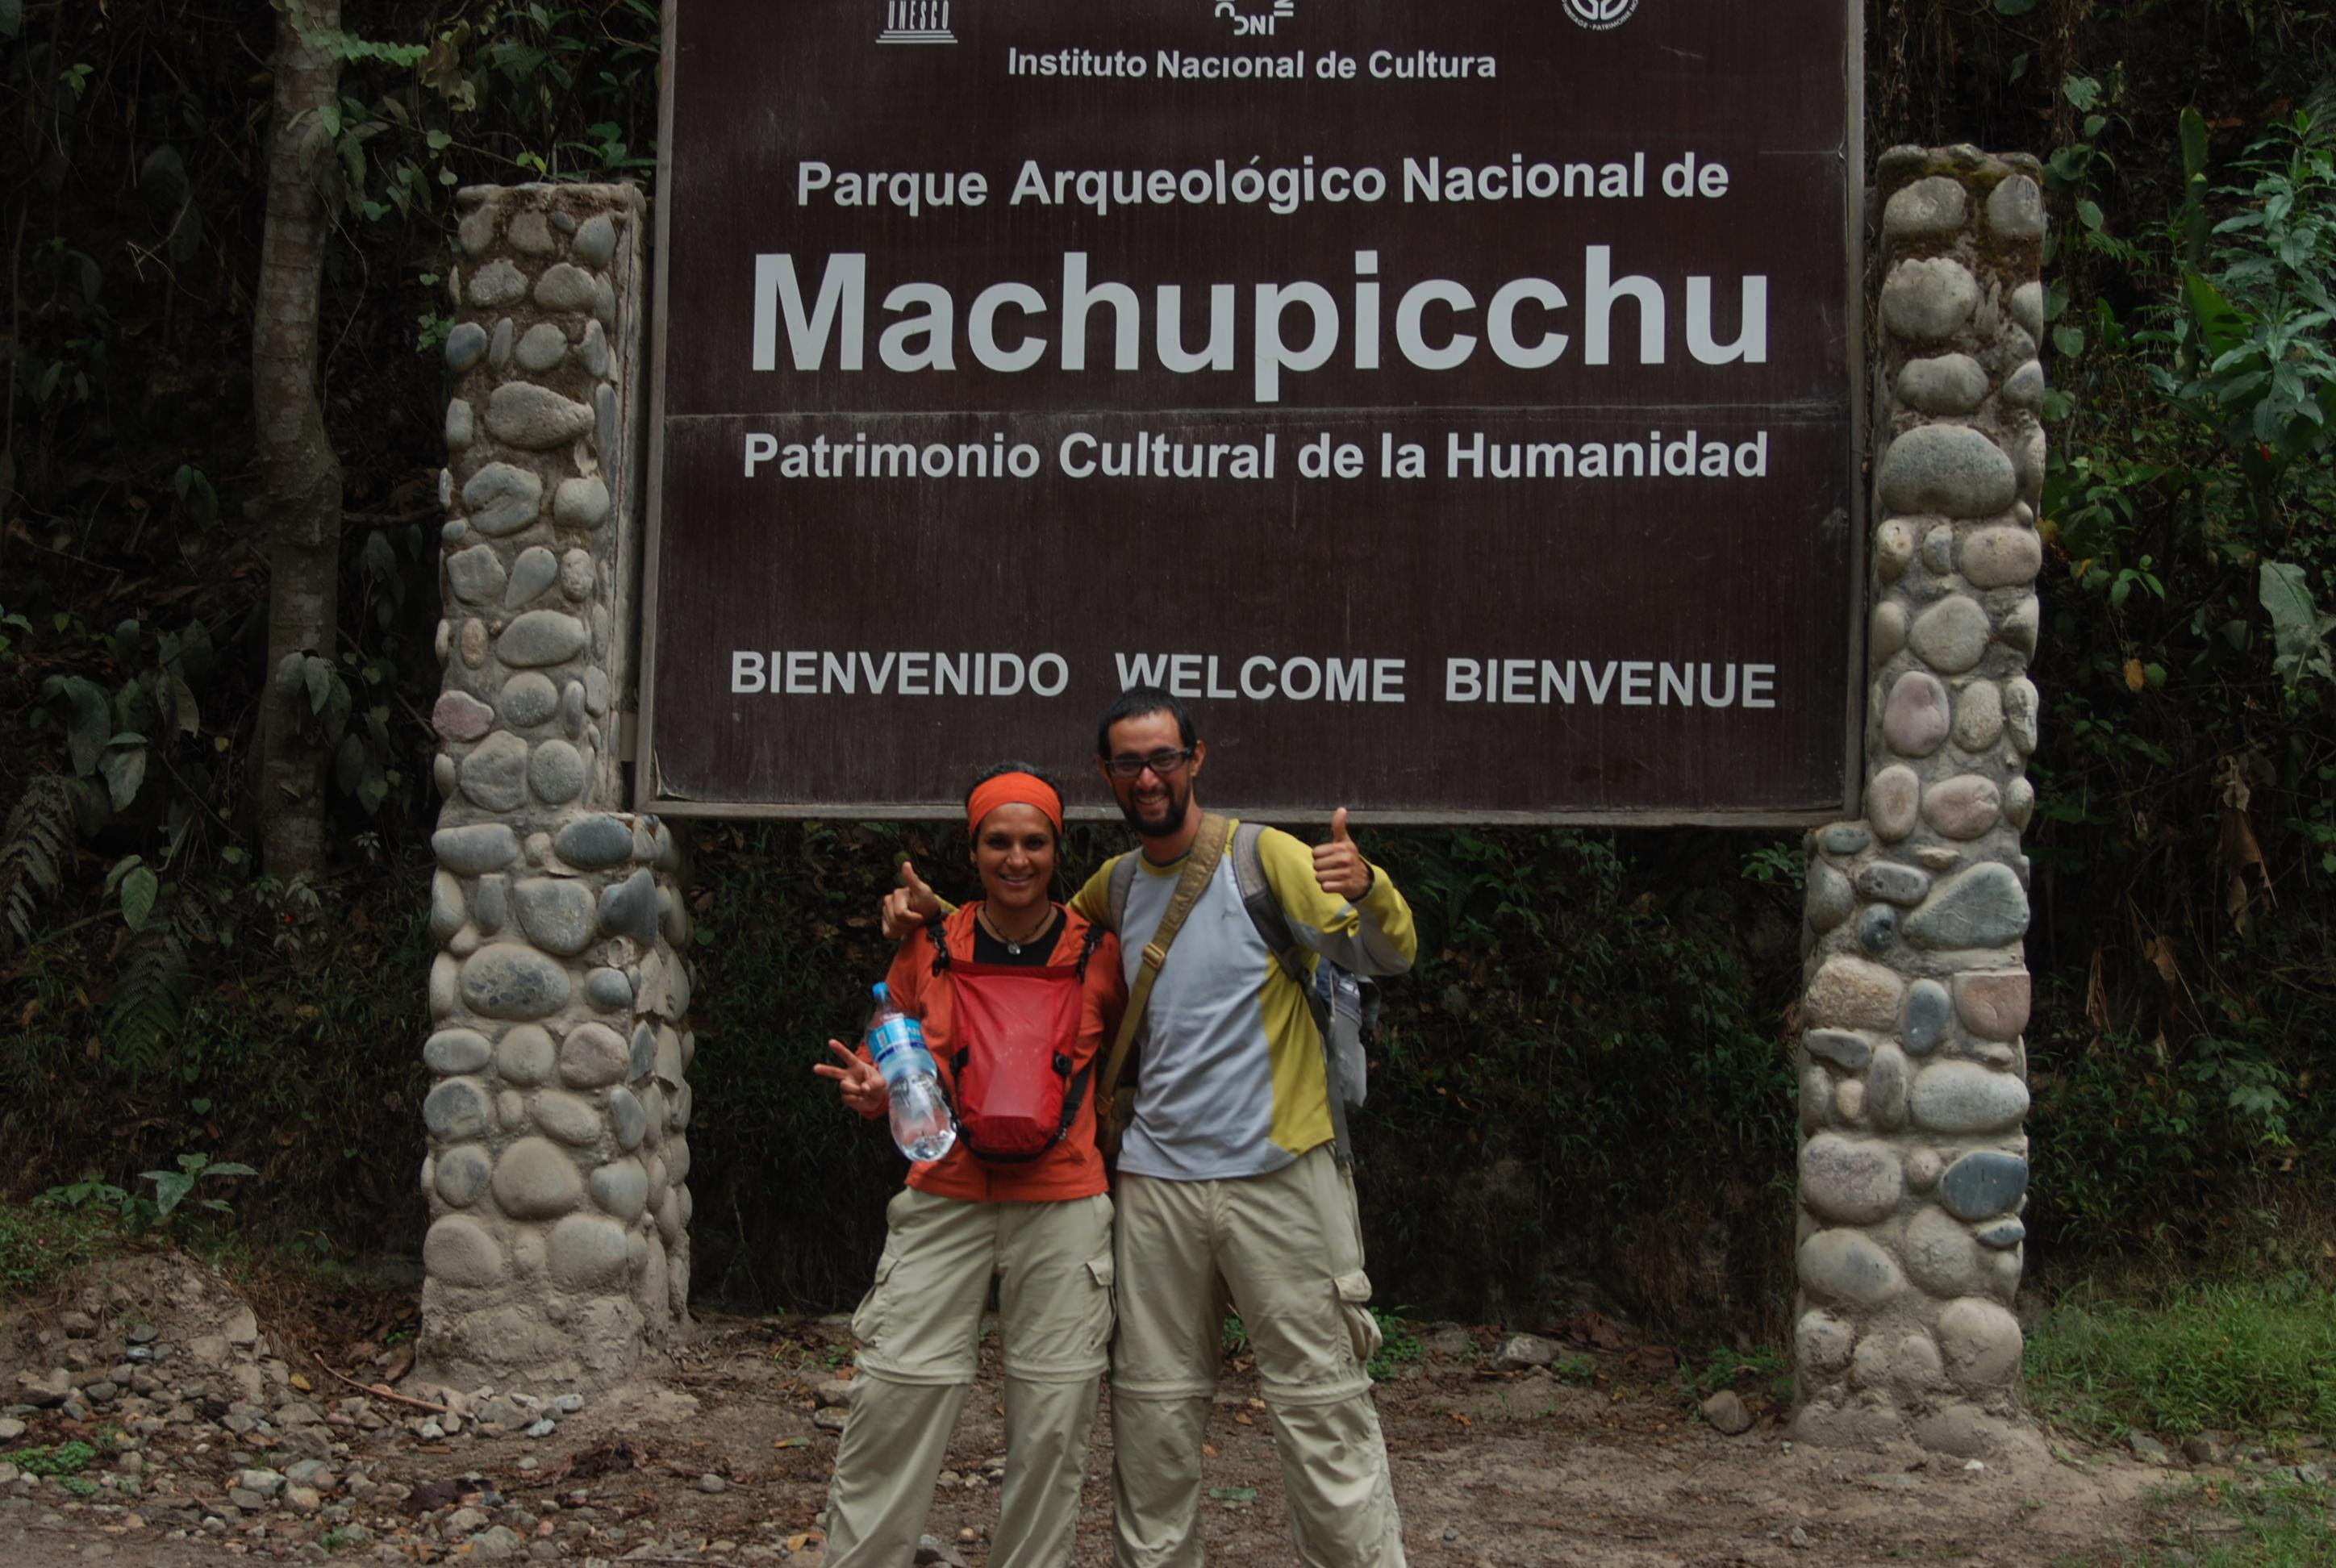 Welcome to Machupicchu